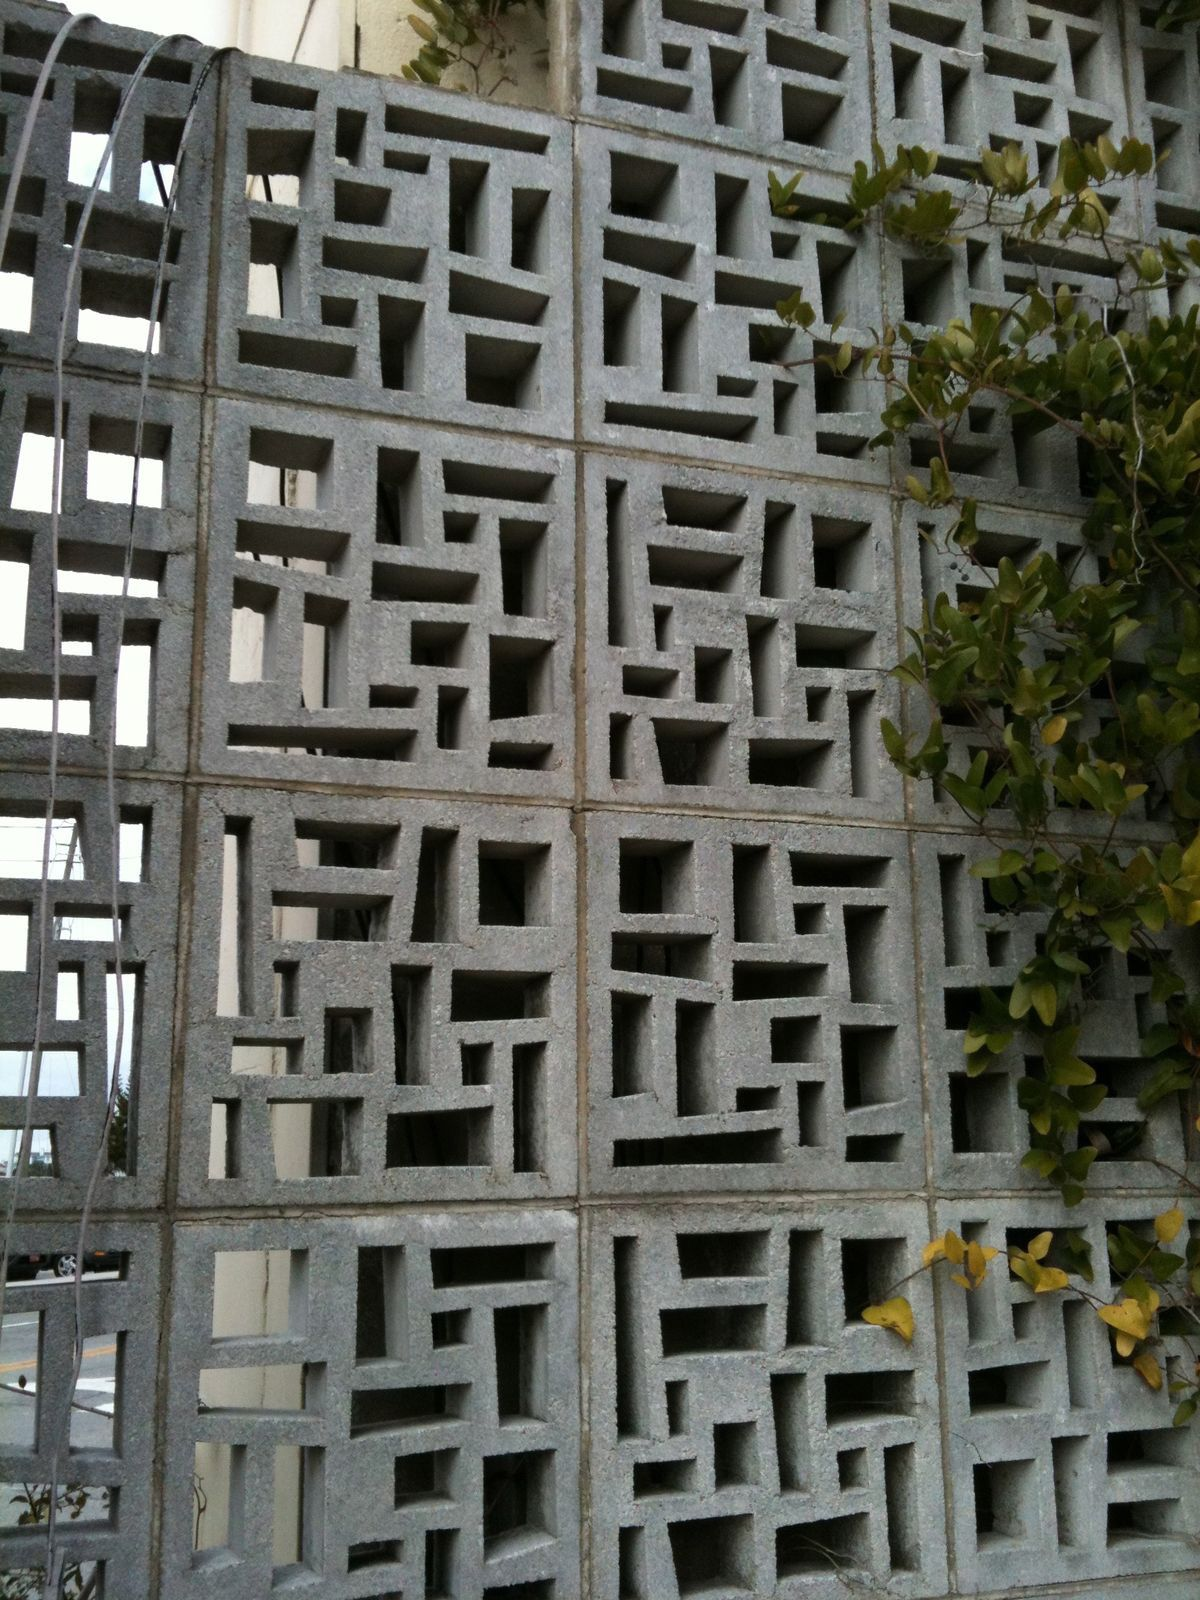 Pin By Gerrit On Claustra Screenwall Decorative Concrete Blocks